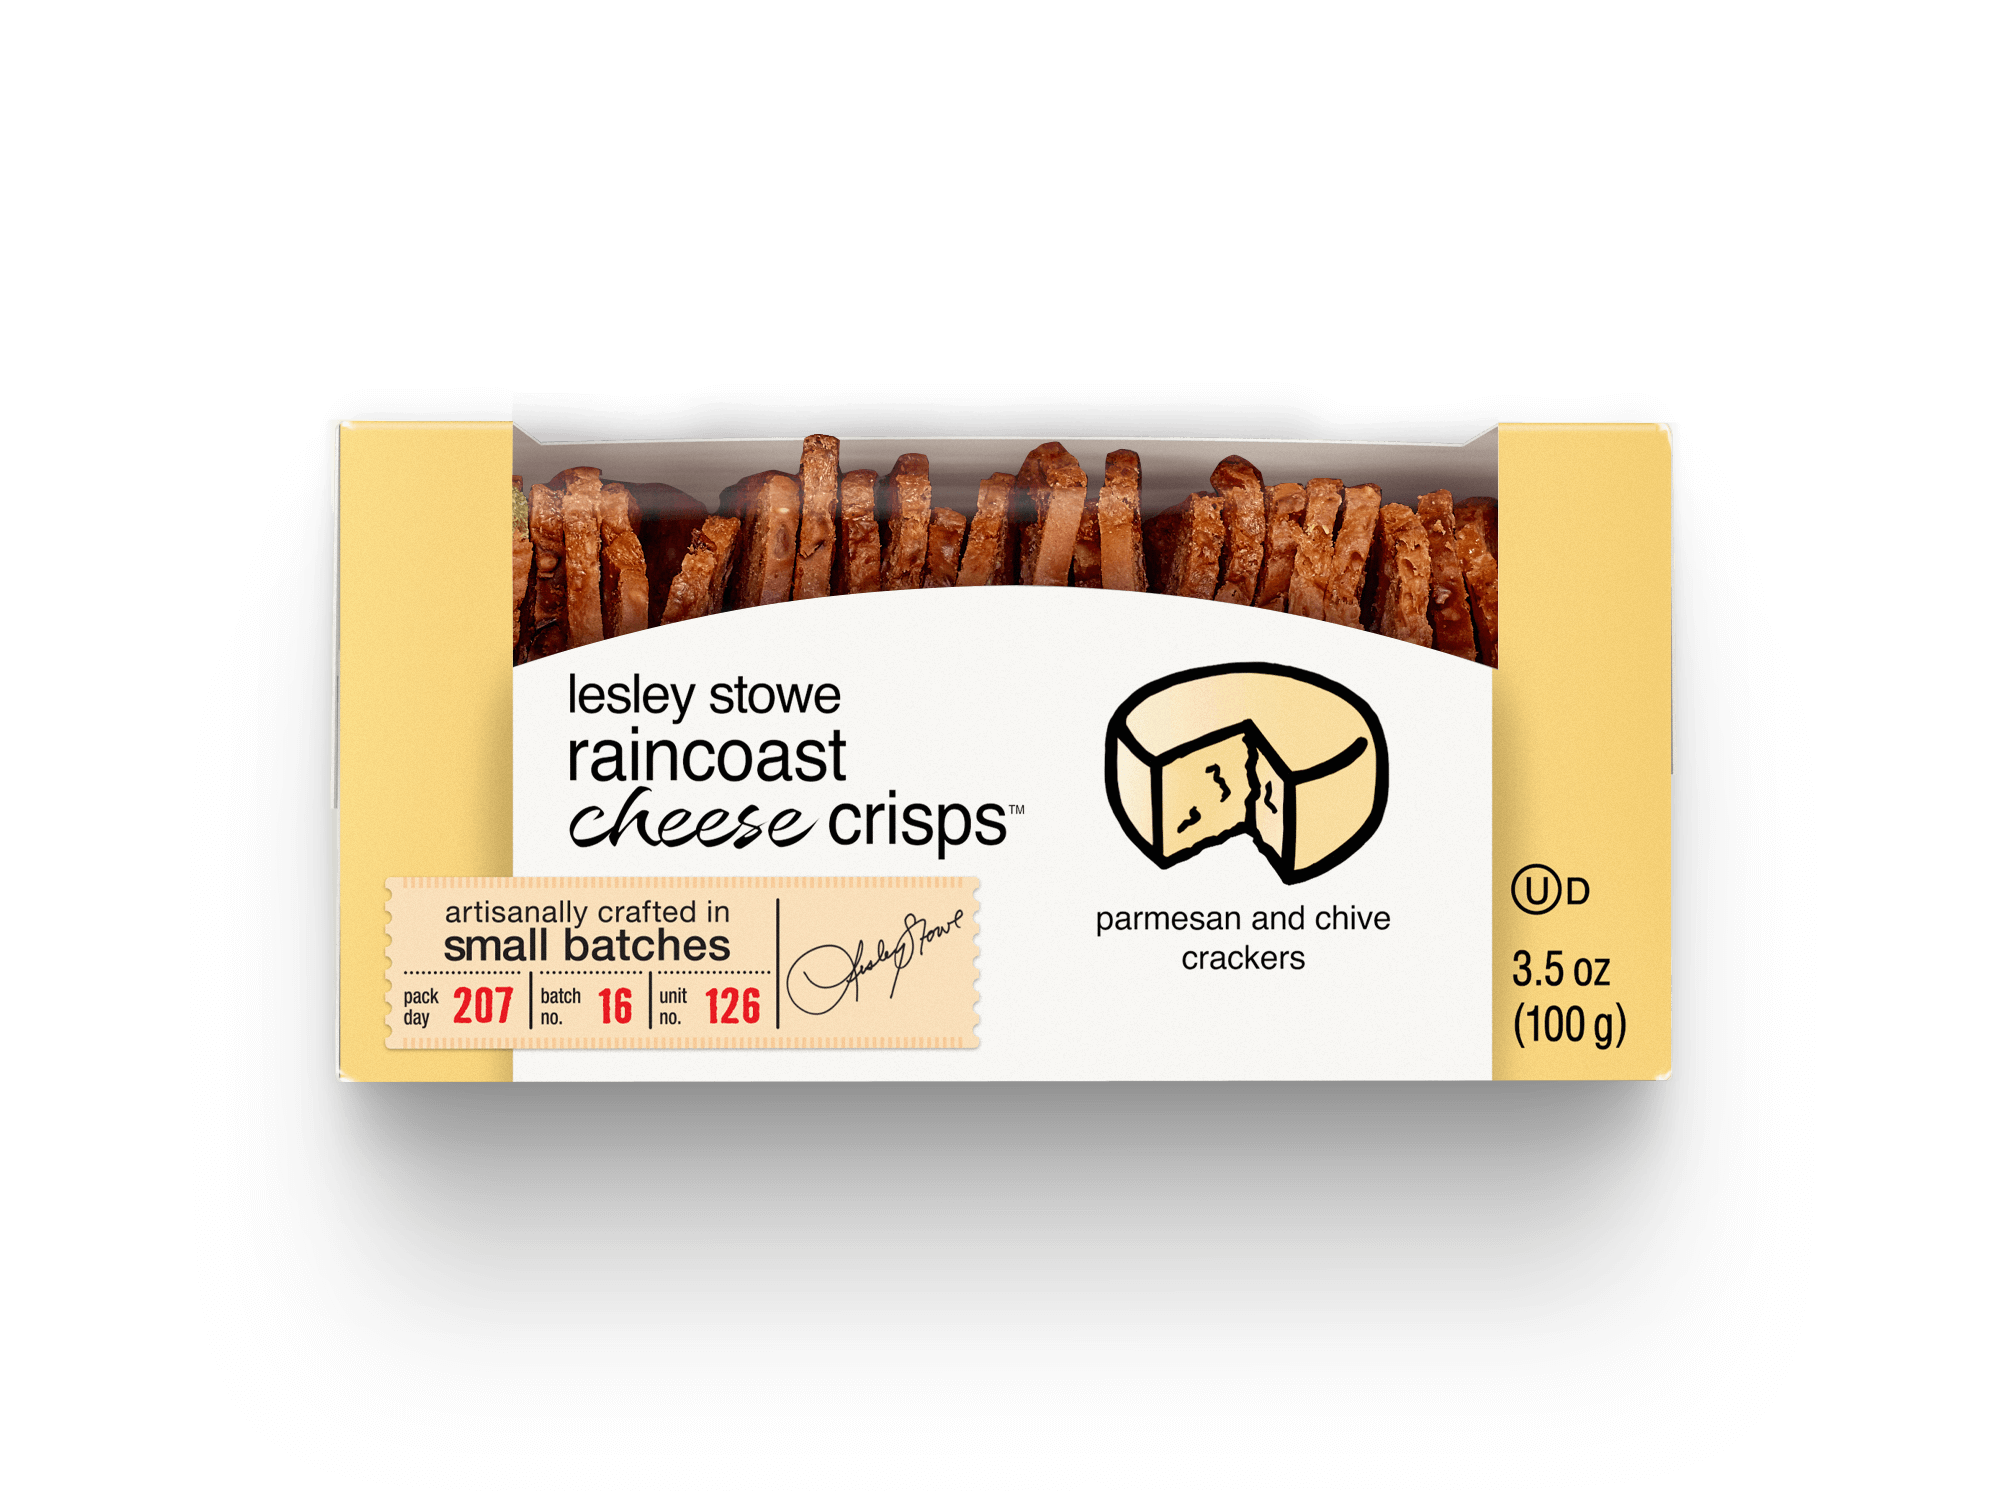 Packaging for lesley stowe raincoast cheese crisps™ Parmesan and Chive